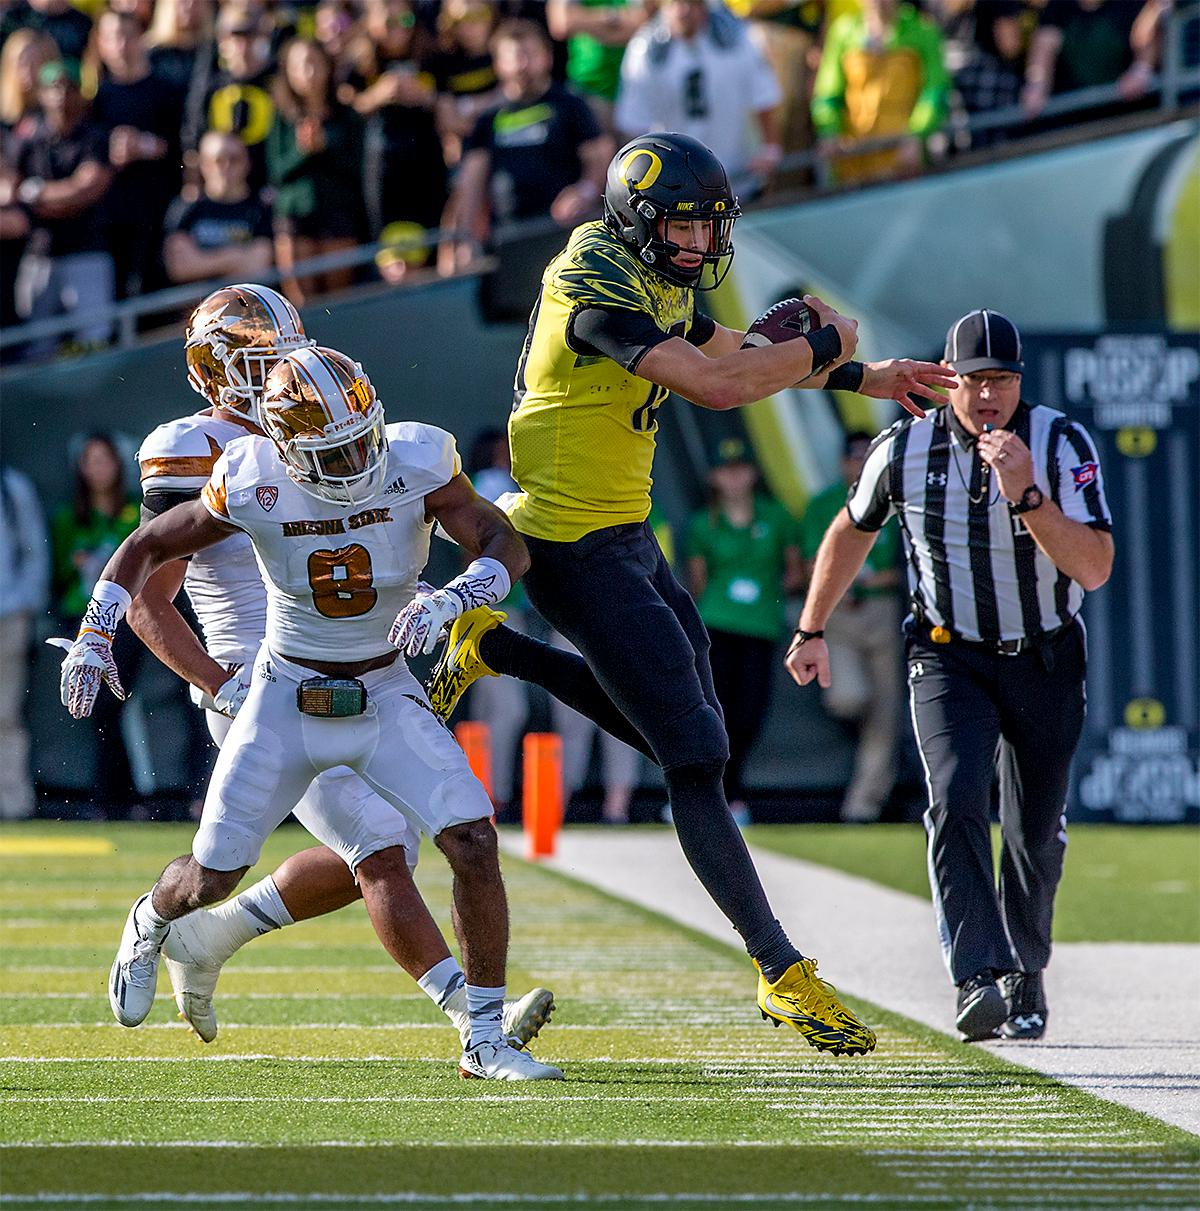 The Duck's Justin Herbert (#10) is pushed out of bounds by the Sun Devils' De'Chavon Gump Hayes (#8). The Oregon Ducks broke their losing streak by defeating the ASU Sun Devils on Saturday 54-35. Photo by August Frank, Oregon News Lab